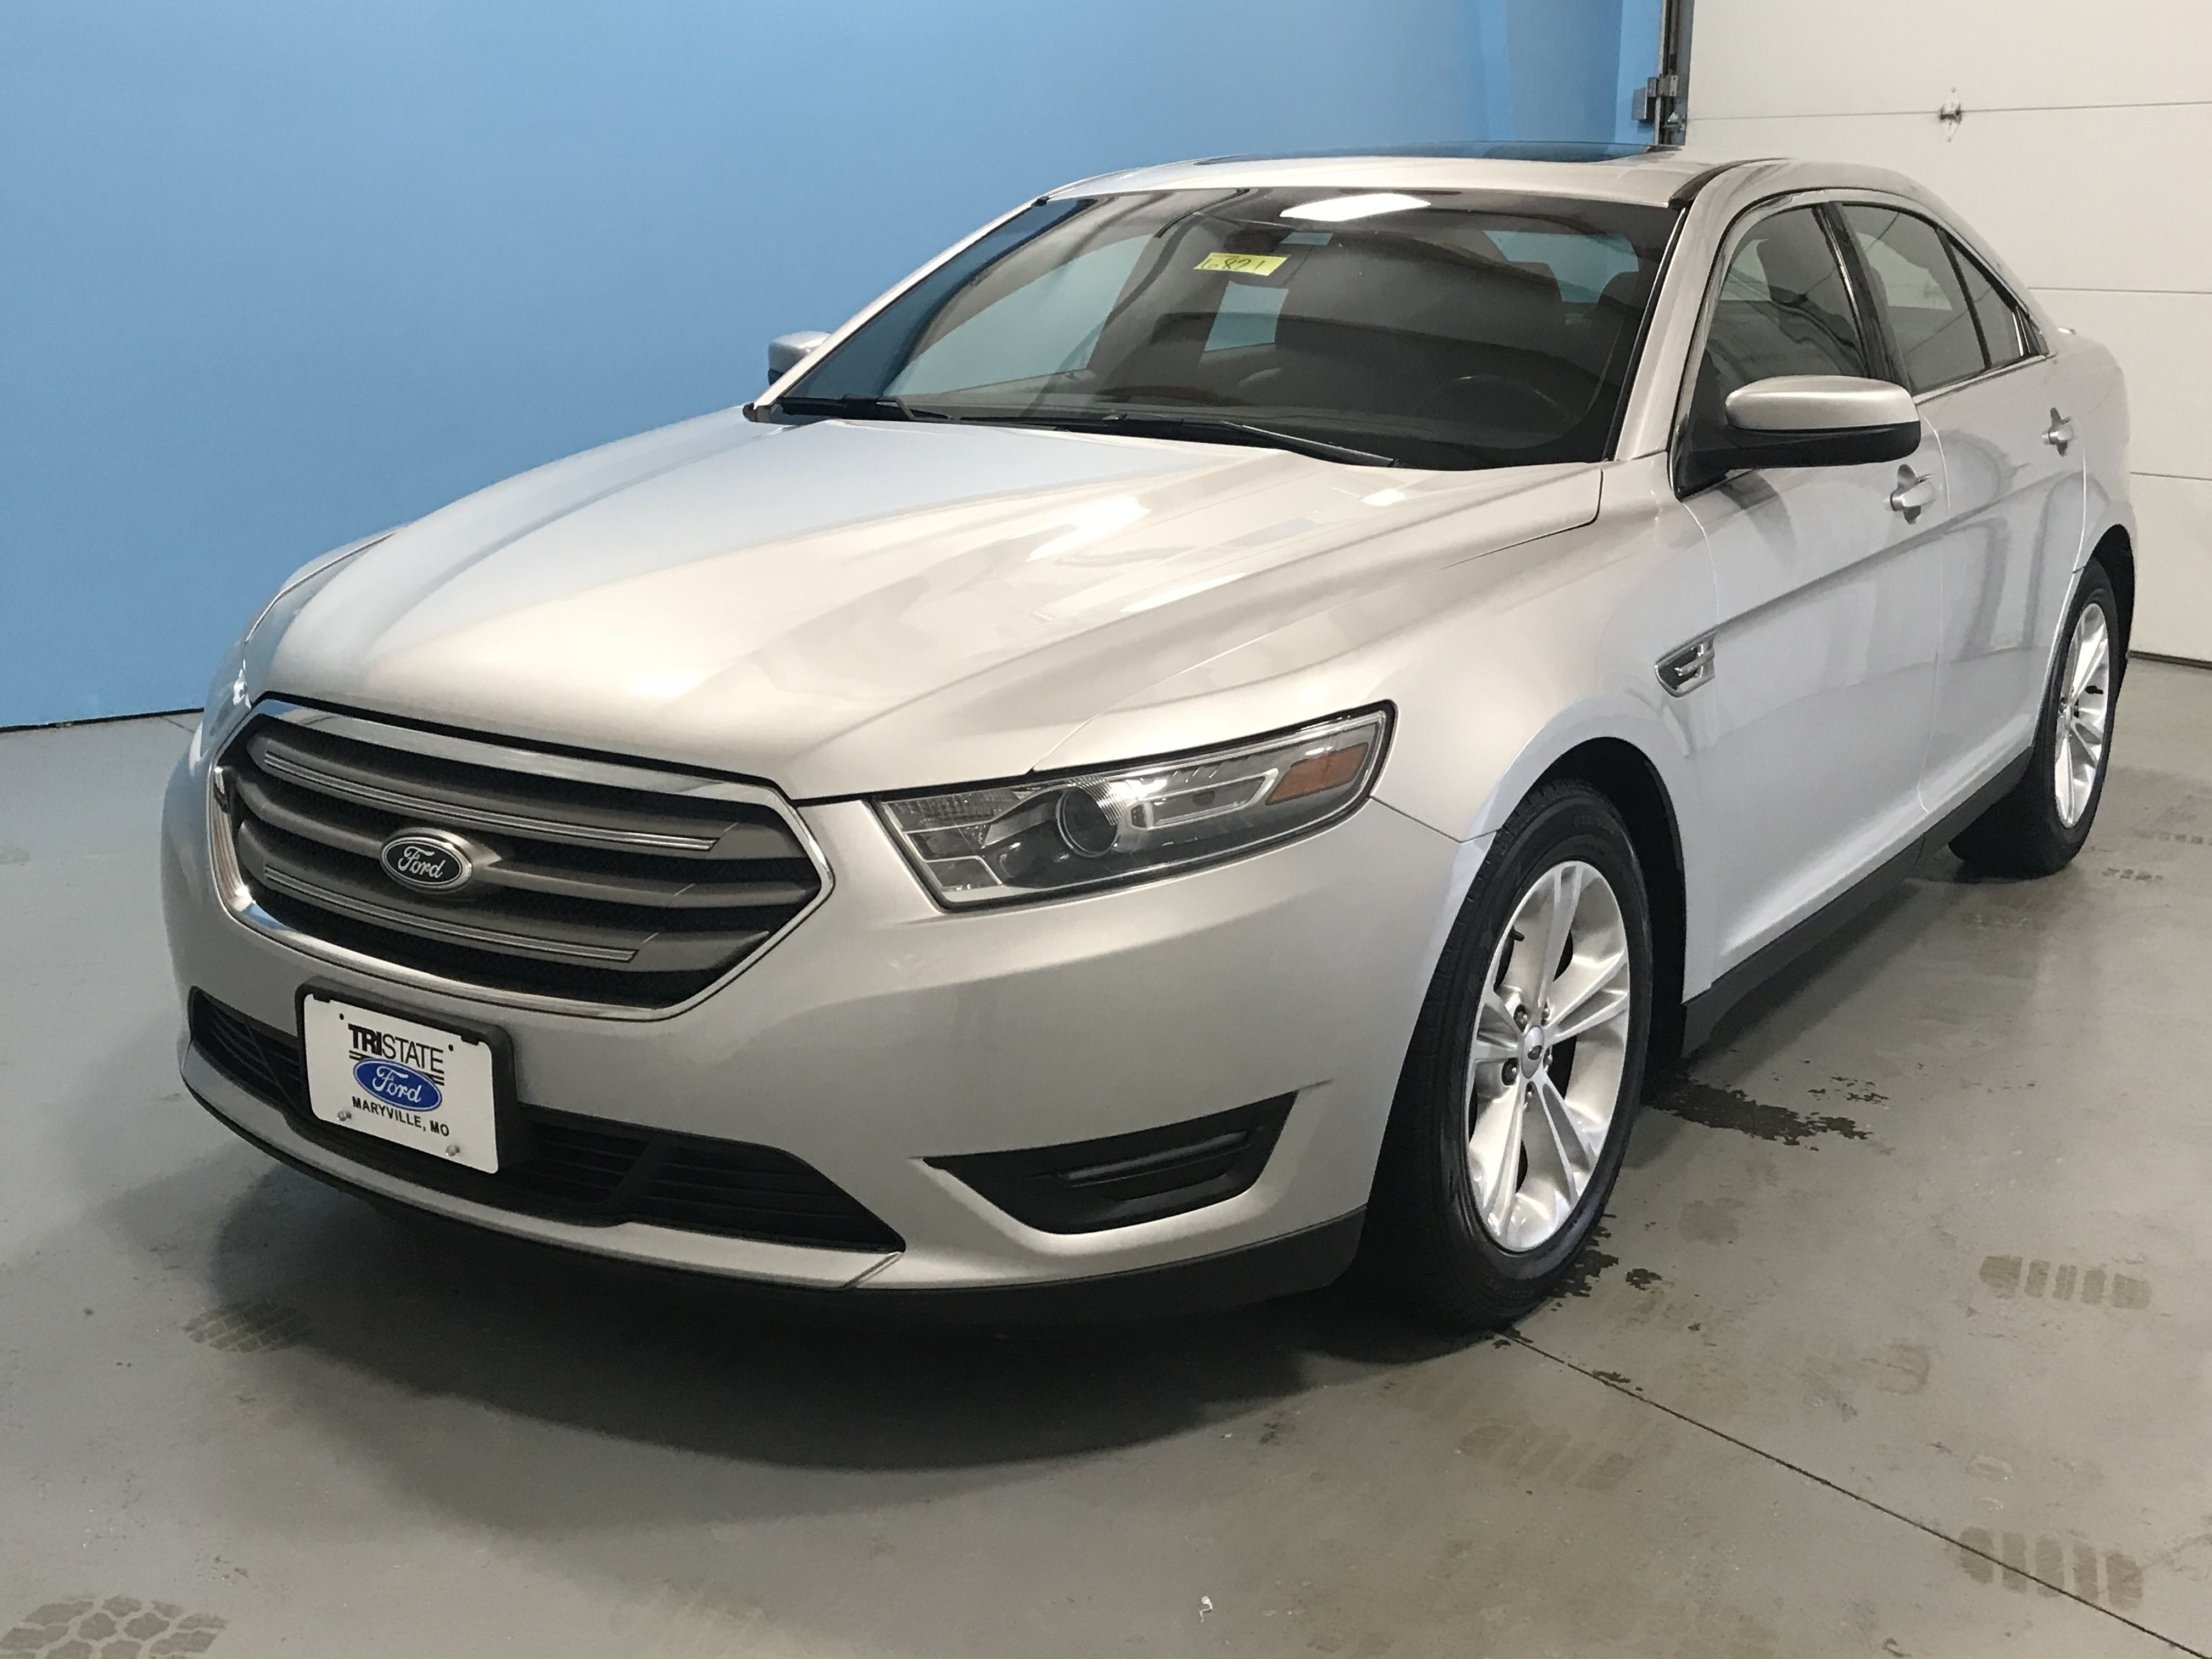 2013 FORD TAURUS SEL ONE OWNER NO ACCIDENTS LEATHER INTERIOR